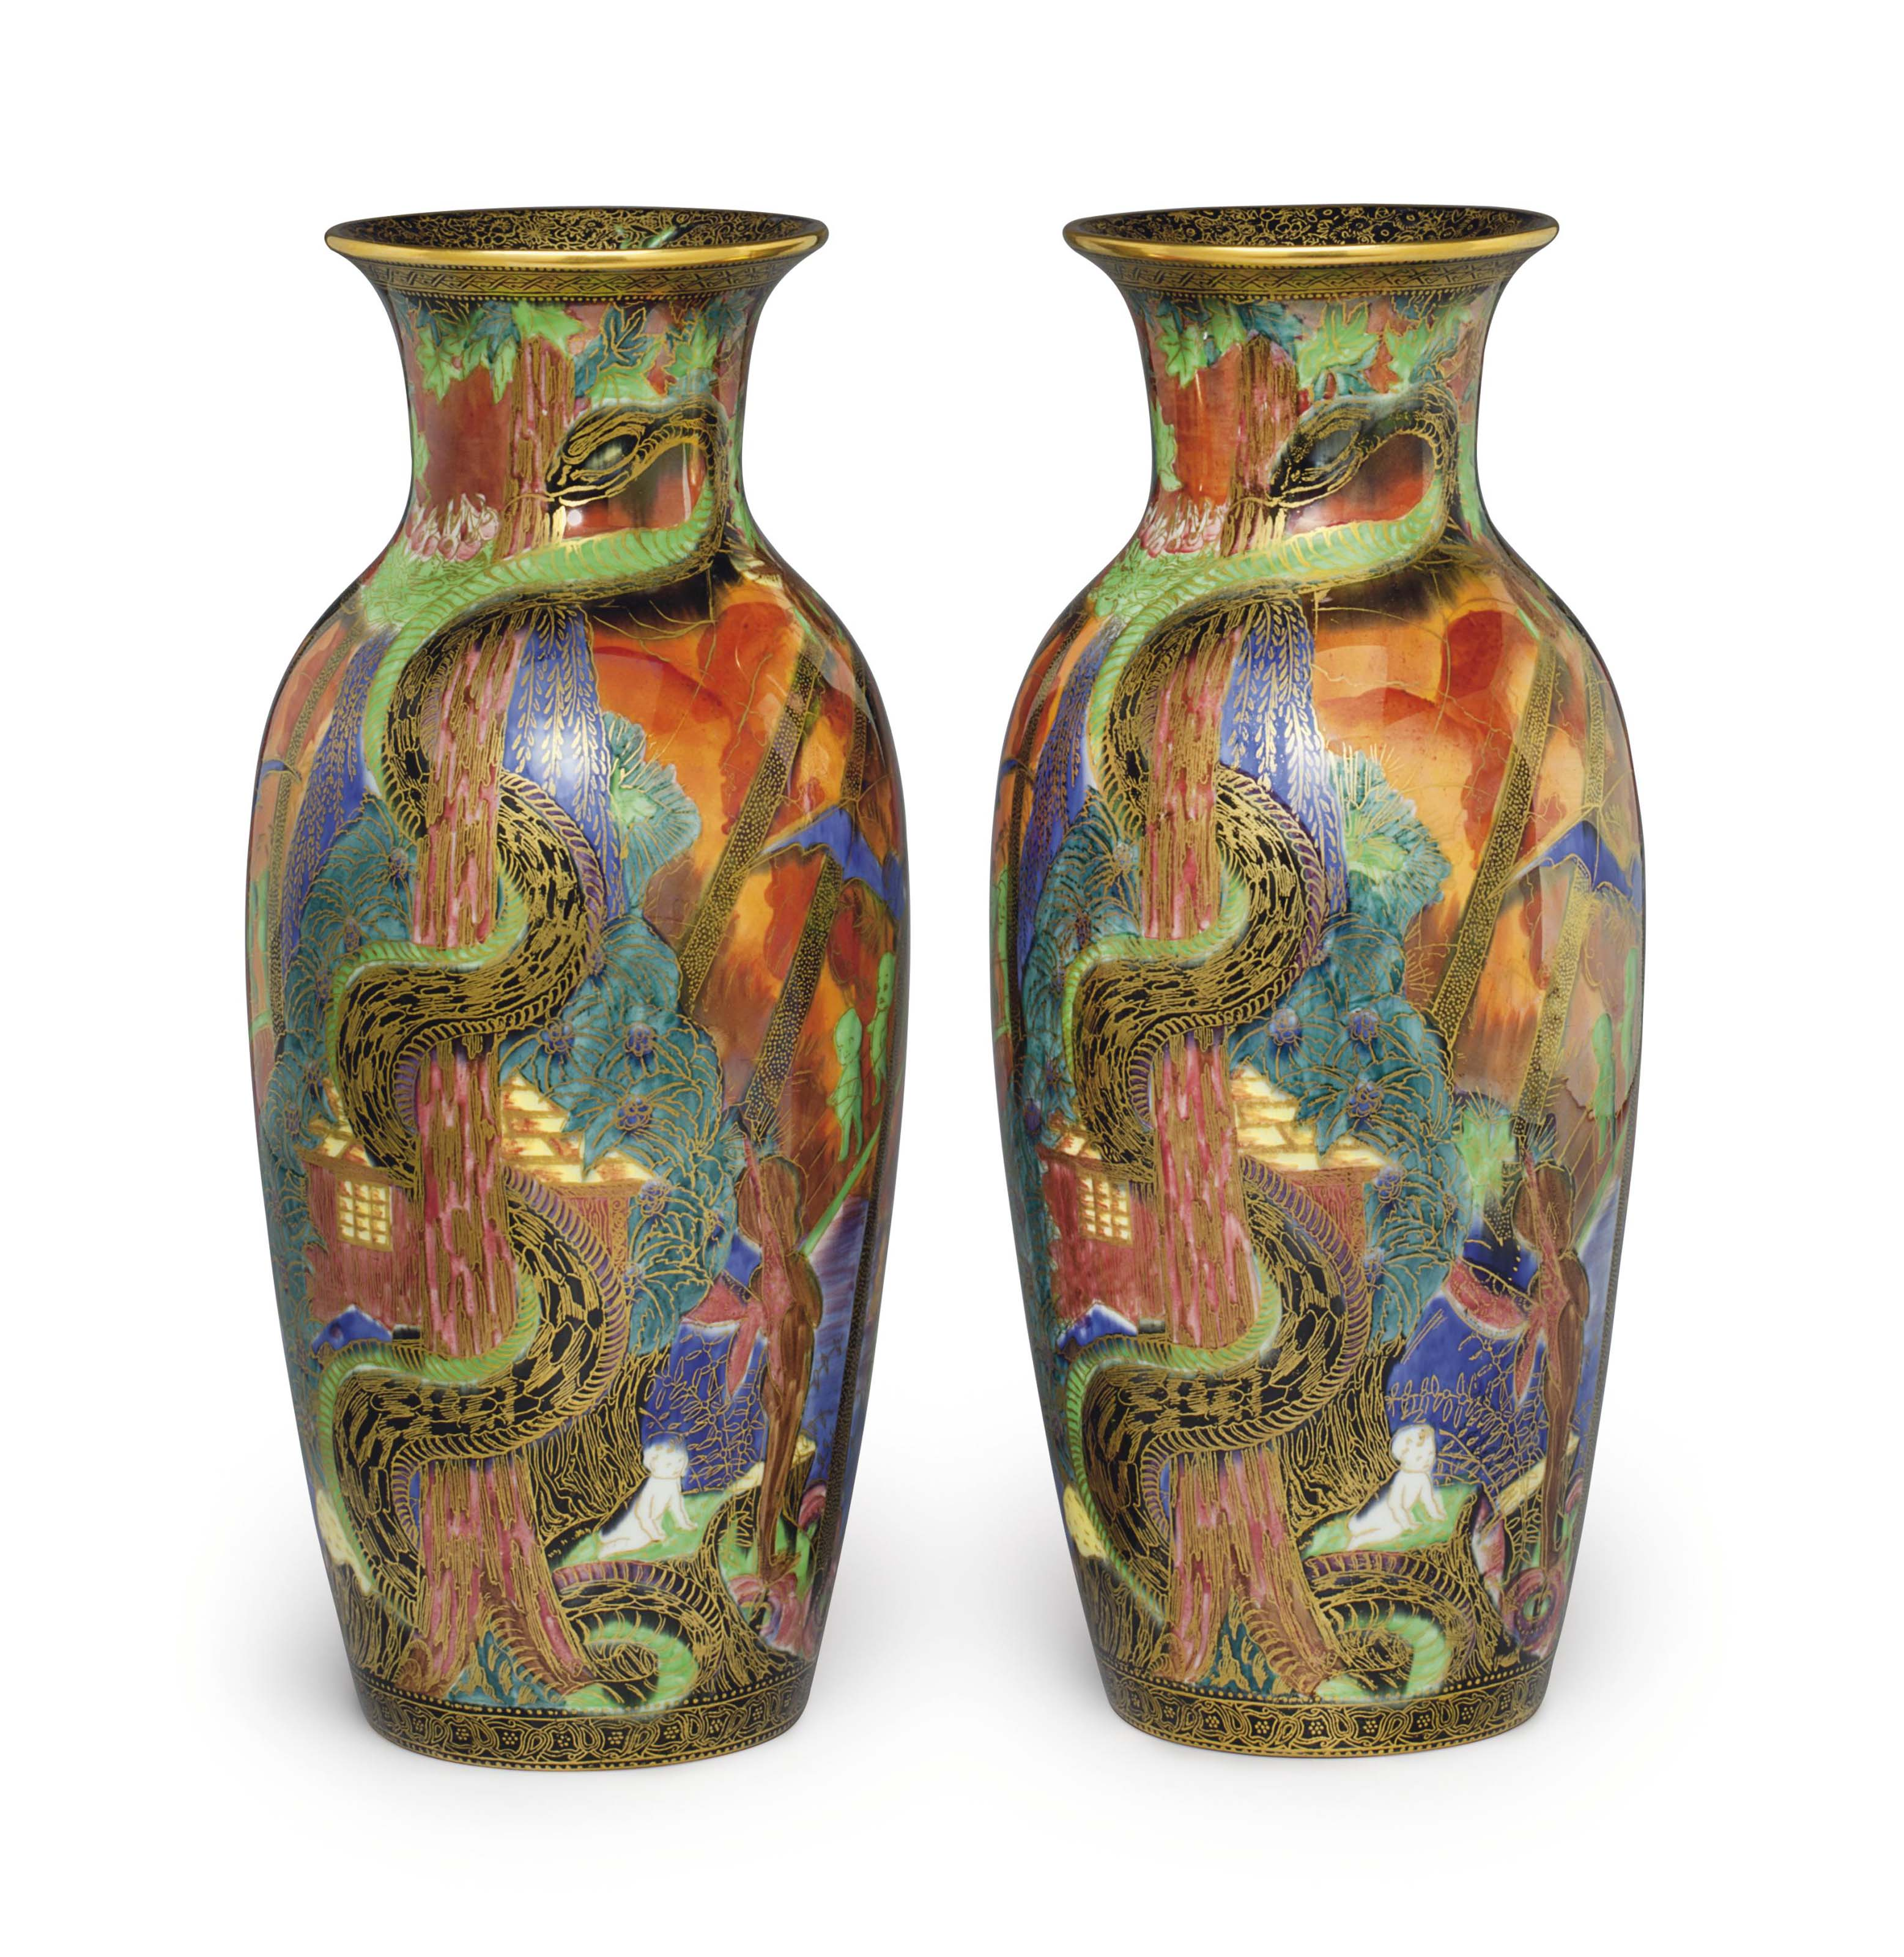 A PAIR OF WEDGWOOD PORCELAIN FLAME FAIRLYLAND LUSTRE VASES